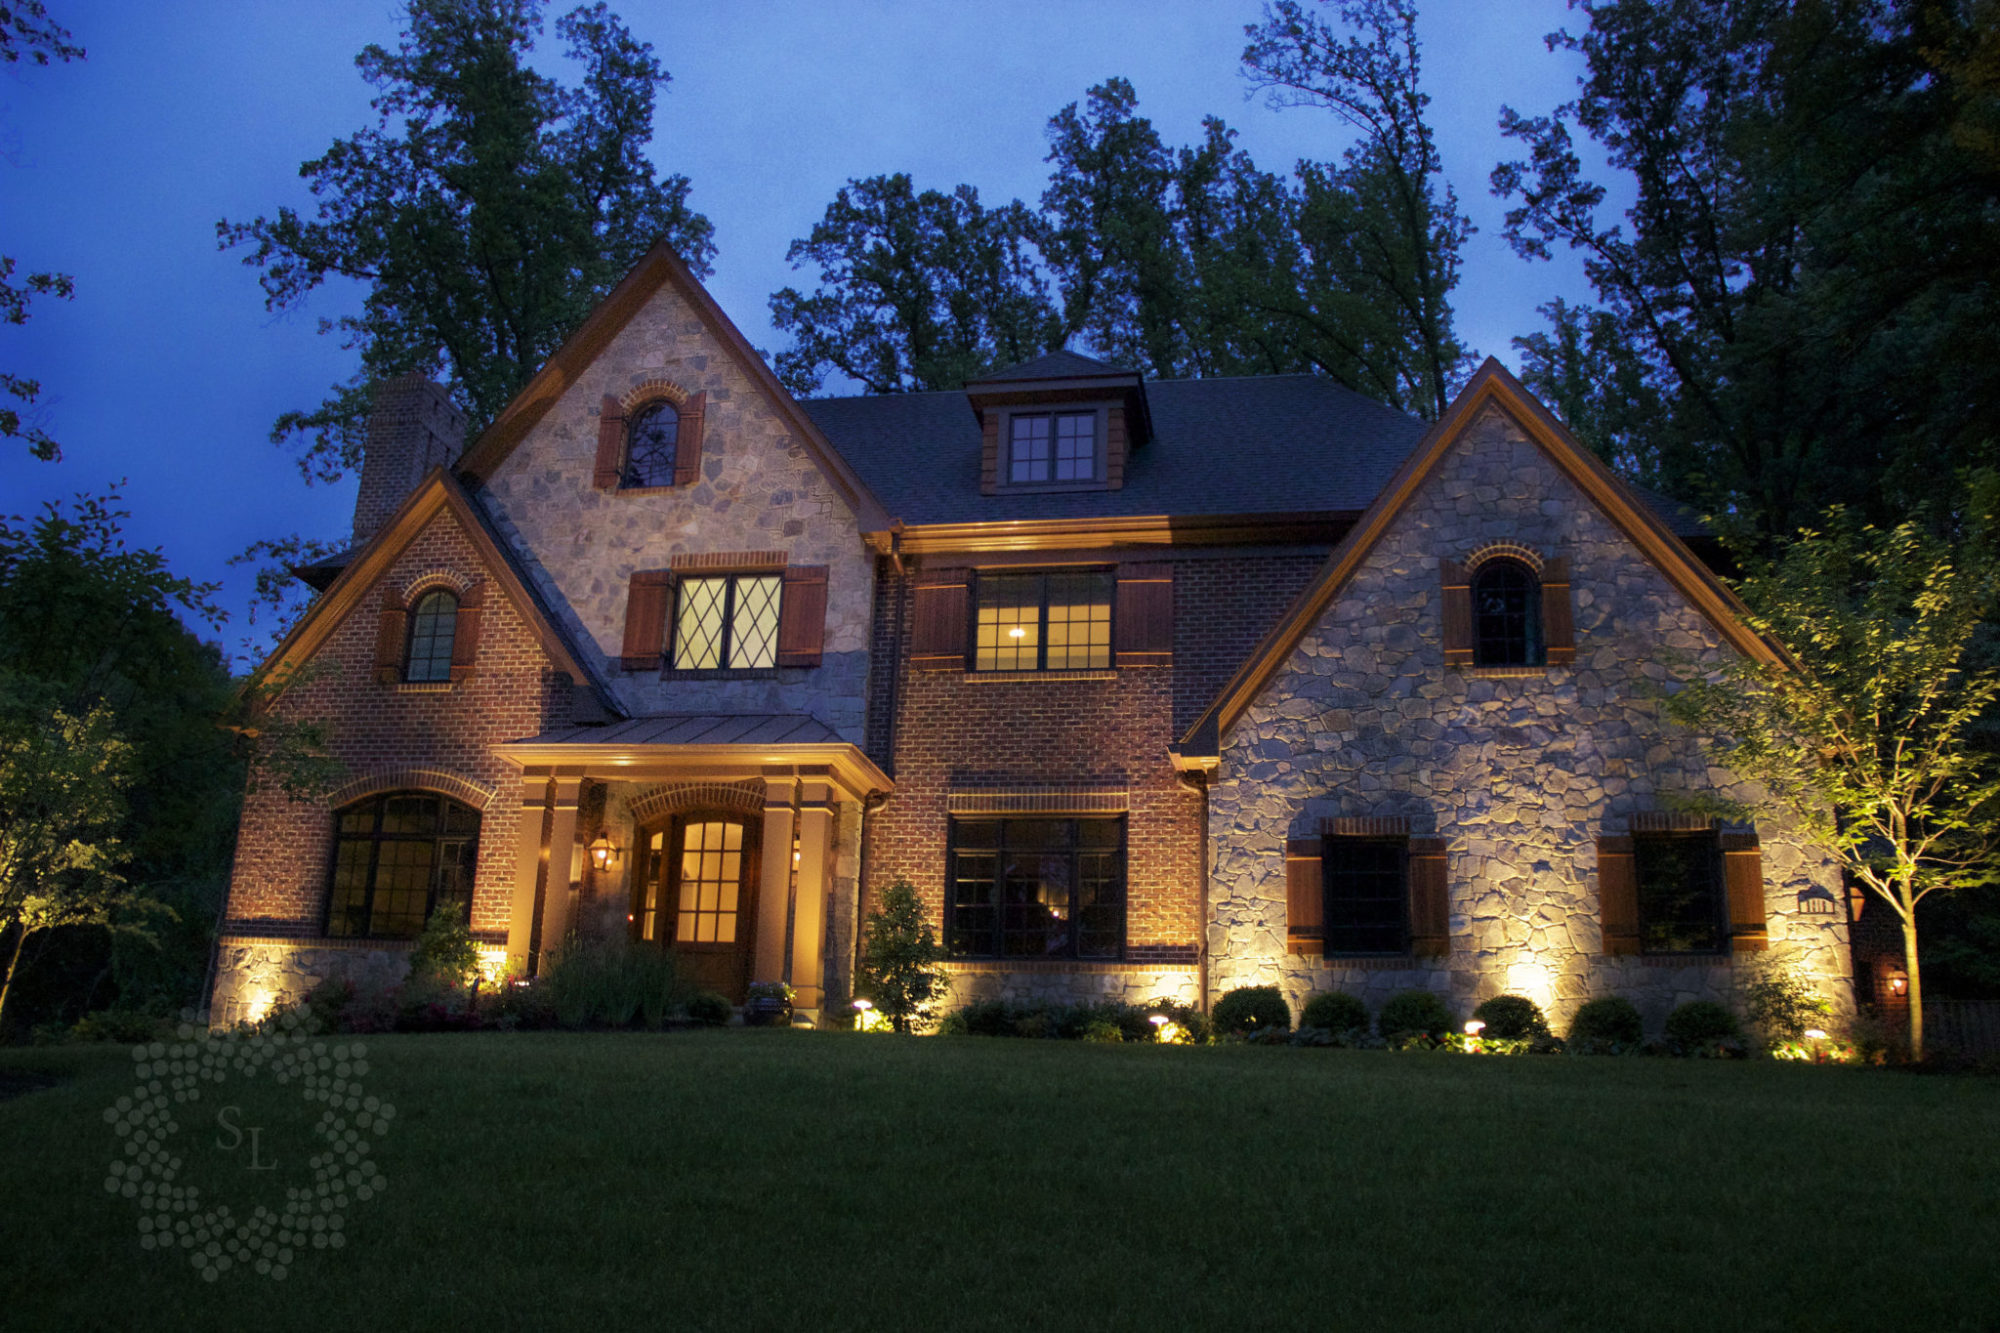 What to Highlight with Your Outdoor Lighting